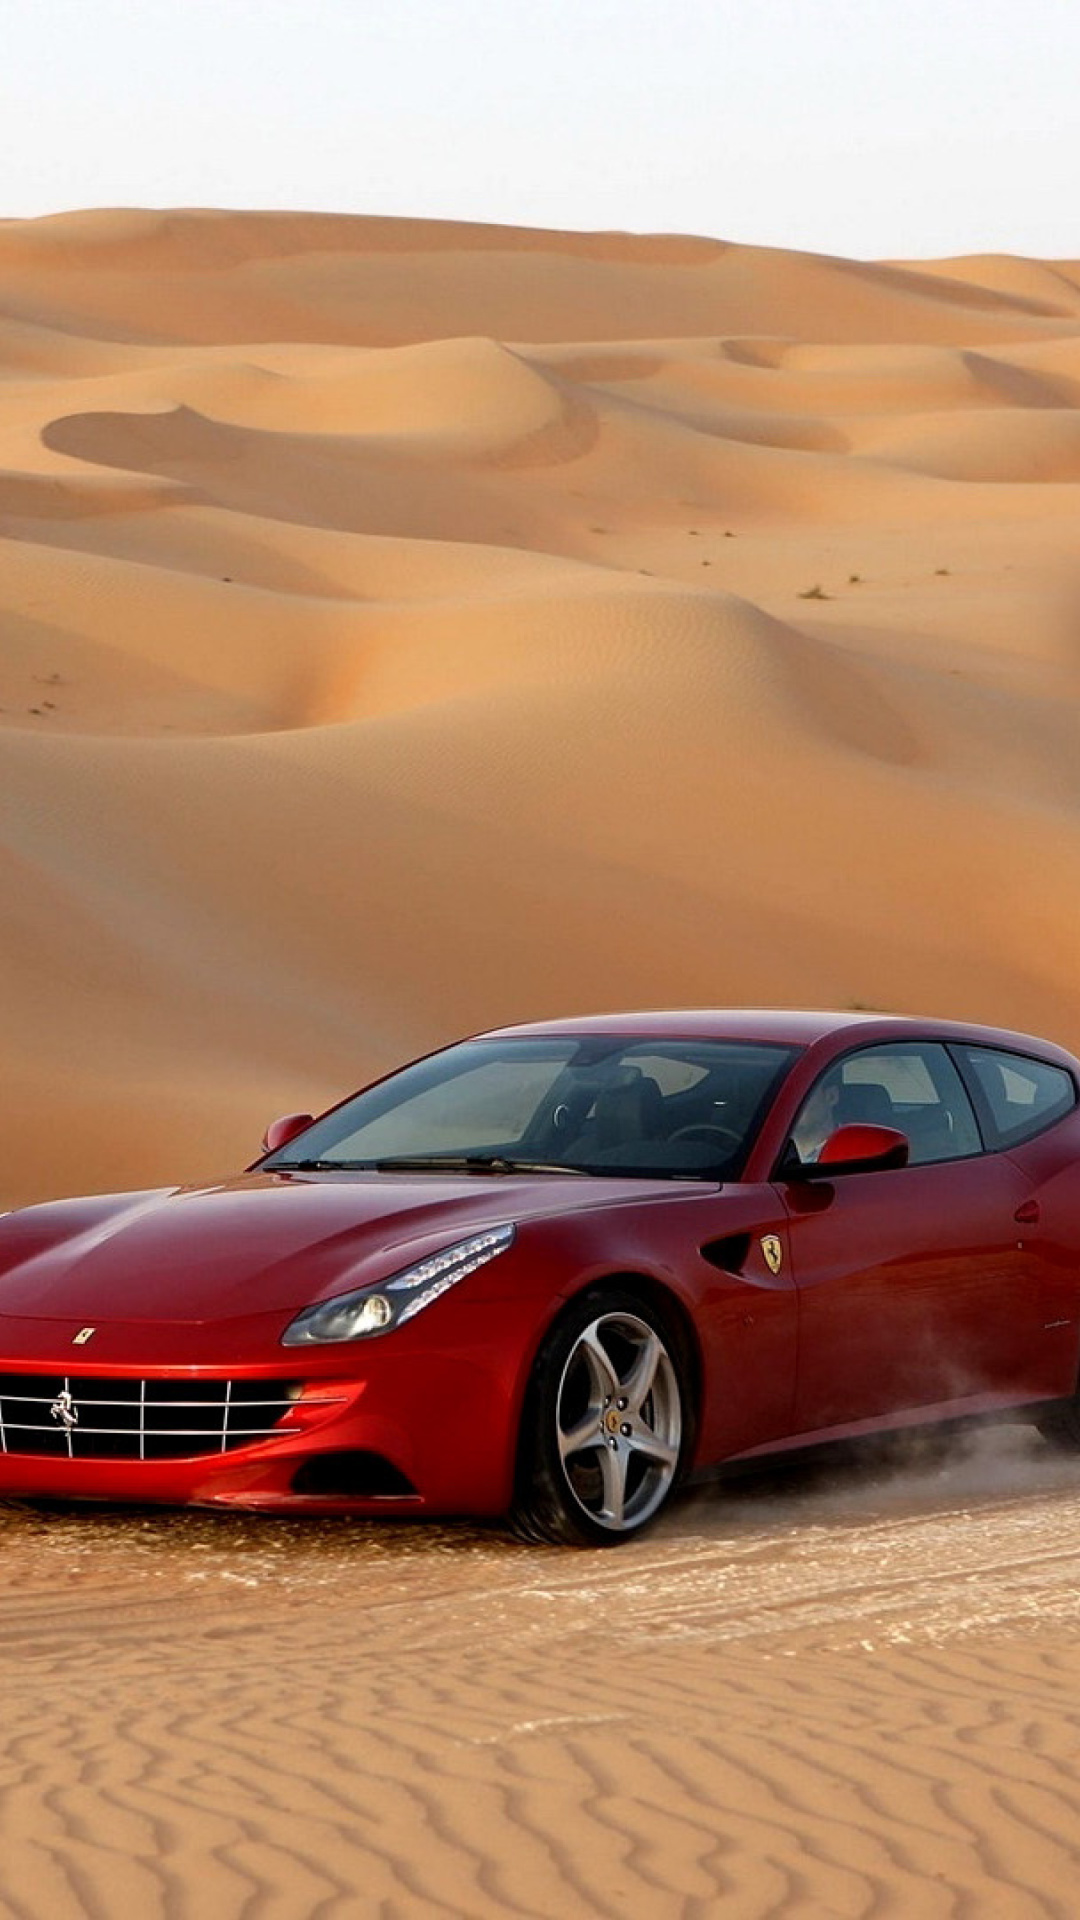 ferrari ff in desert picture for iphone 7 plus - Ferrari 488 Iphone Wallpaper